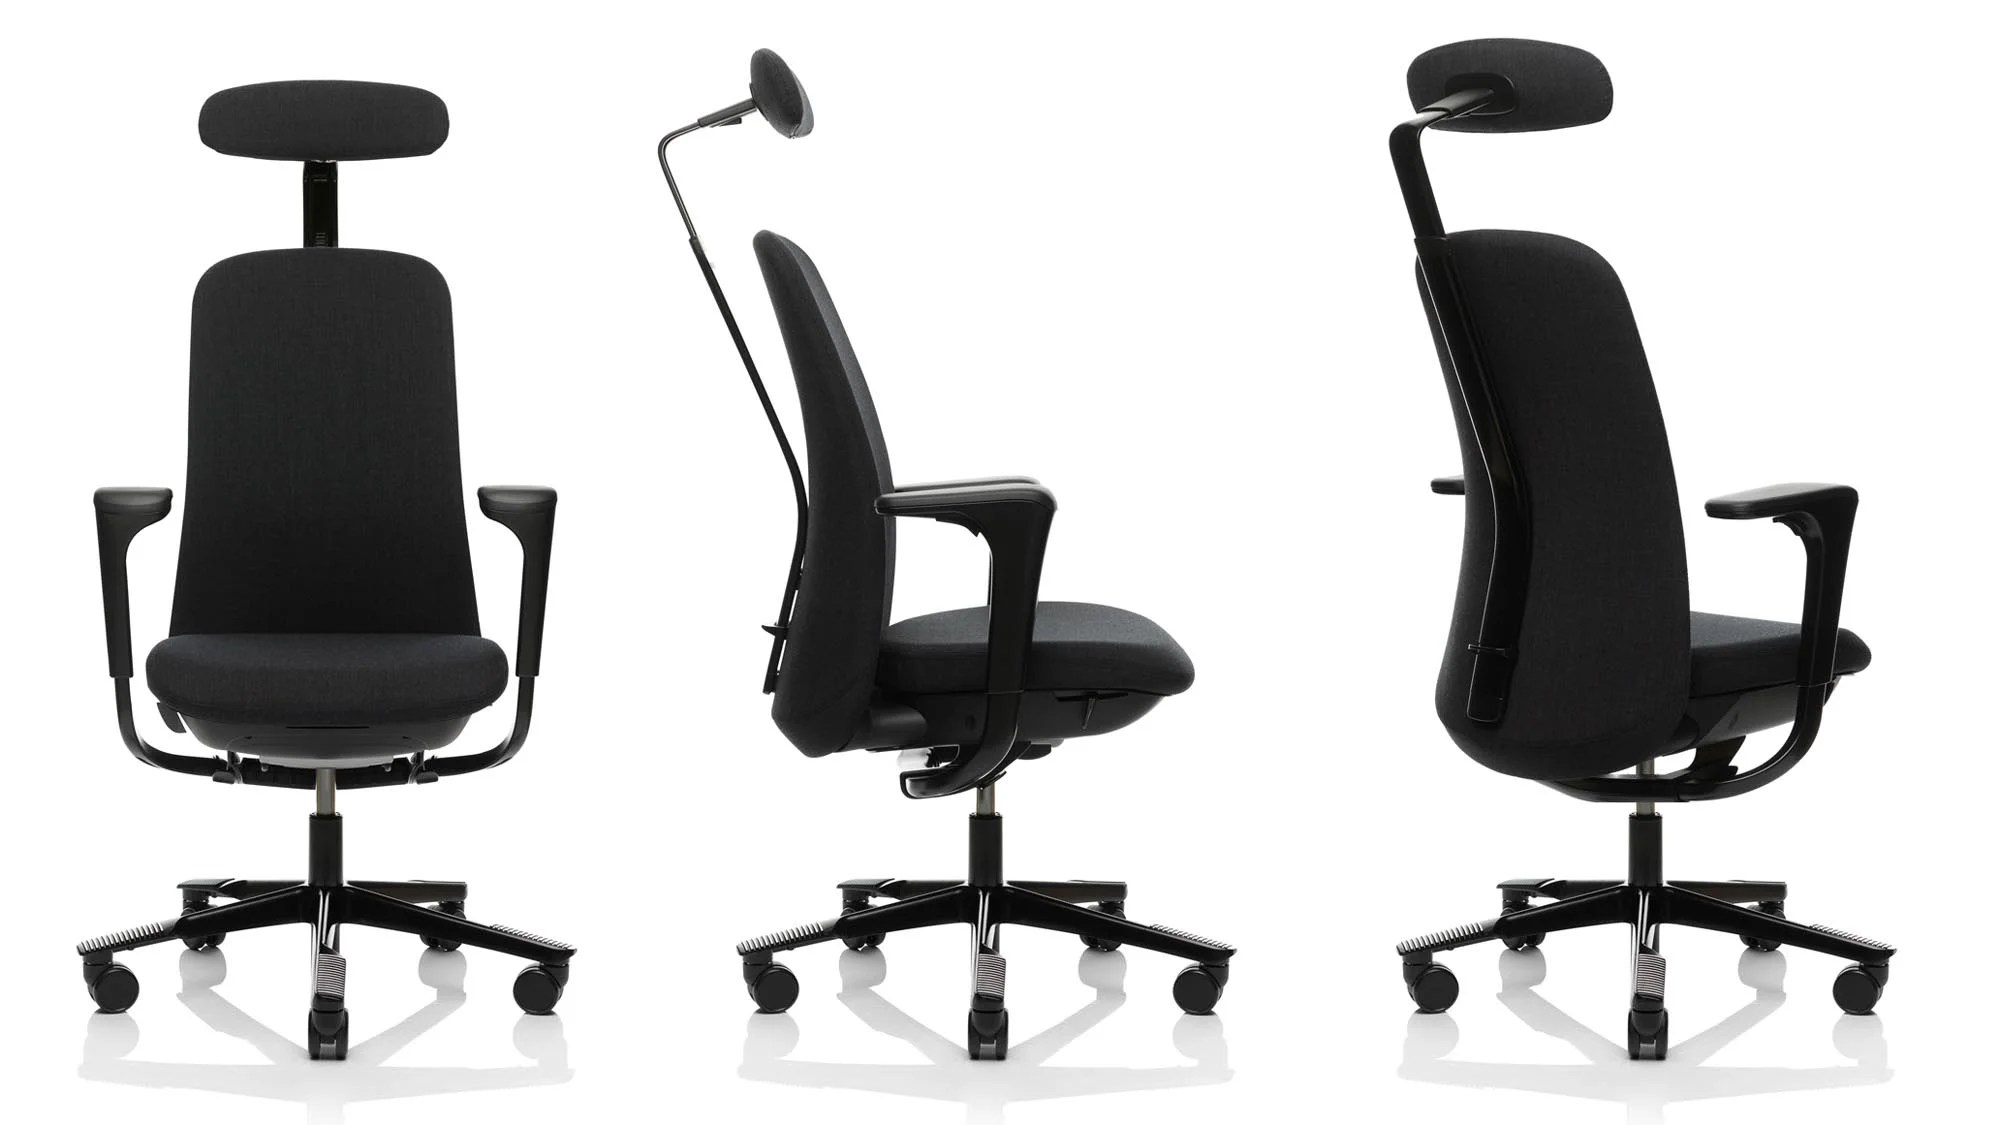 Best office chair 2017 Maintain perfect posture with the